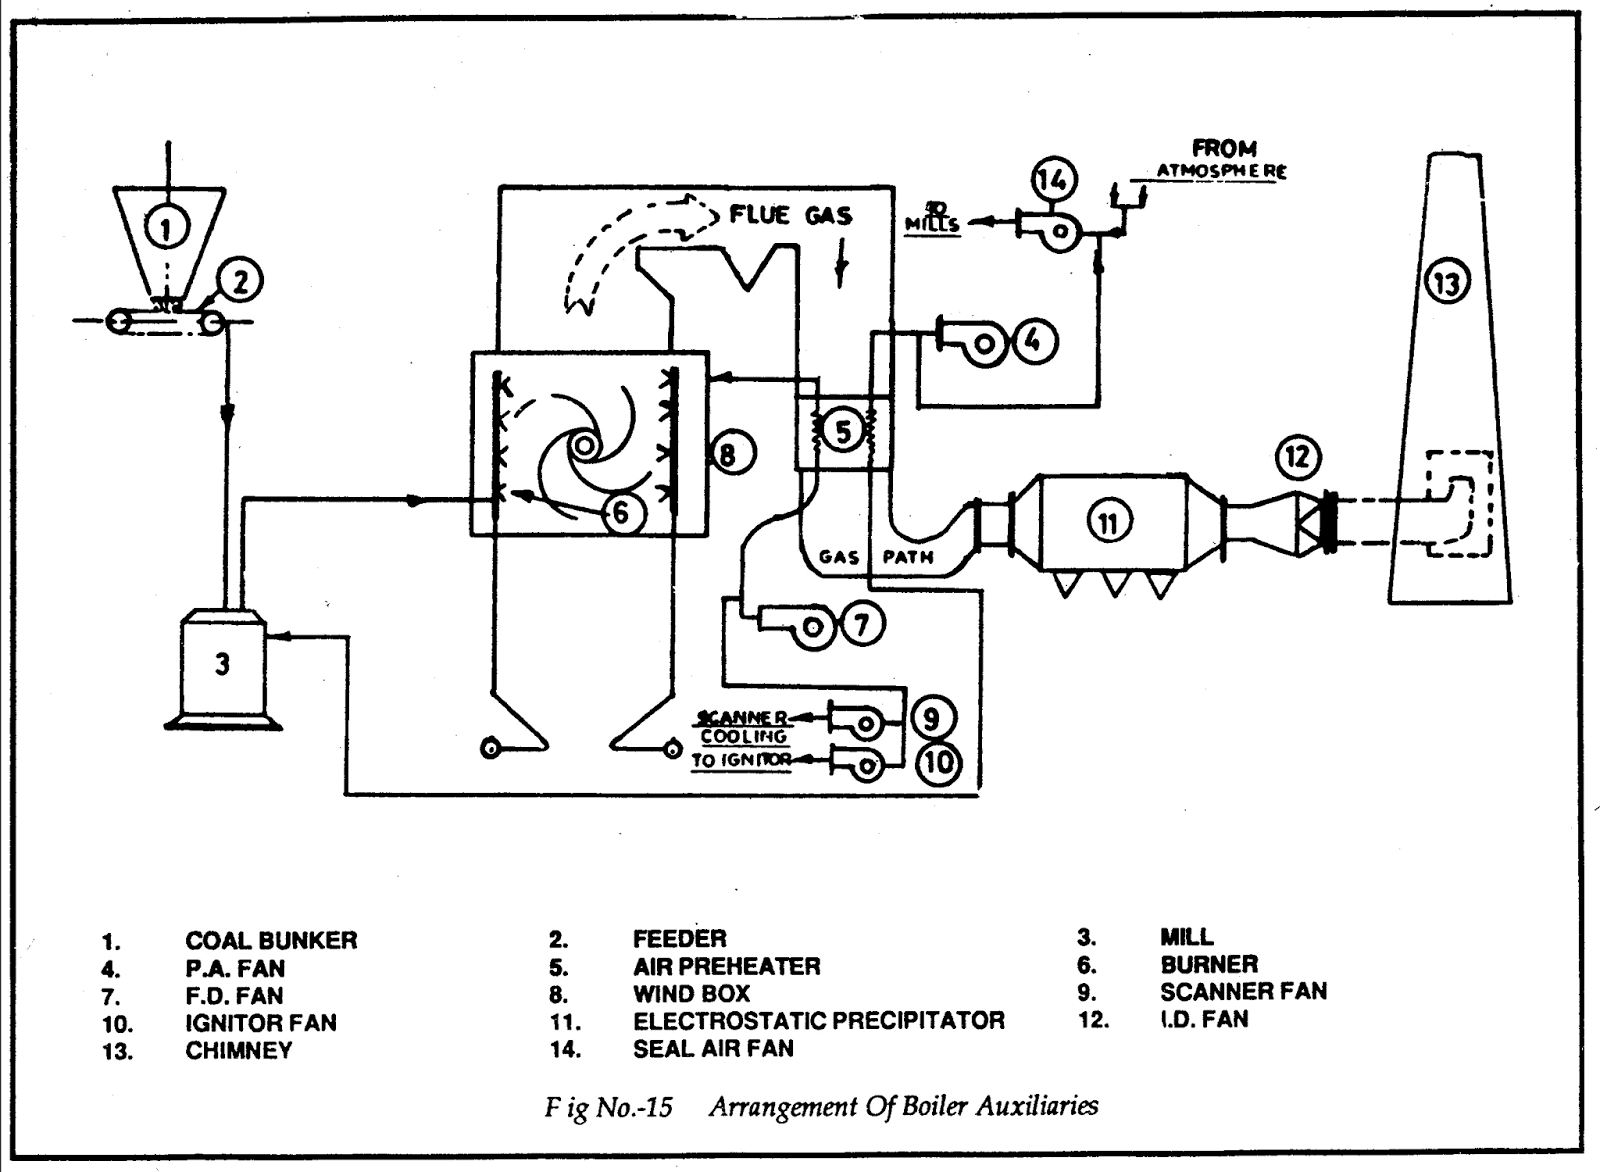 Boiler Auxiliaries: Arrangement Of Boiler Auxiliaries | ALL ABOUT ...